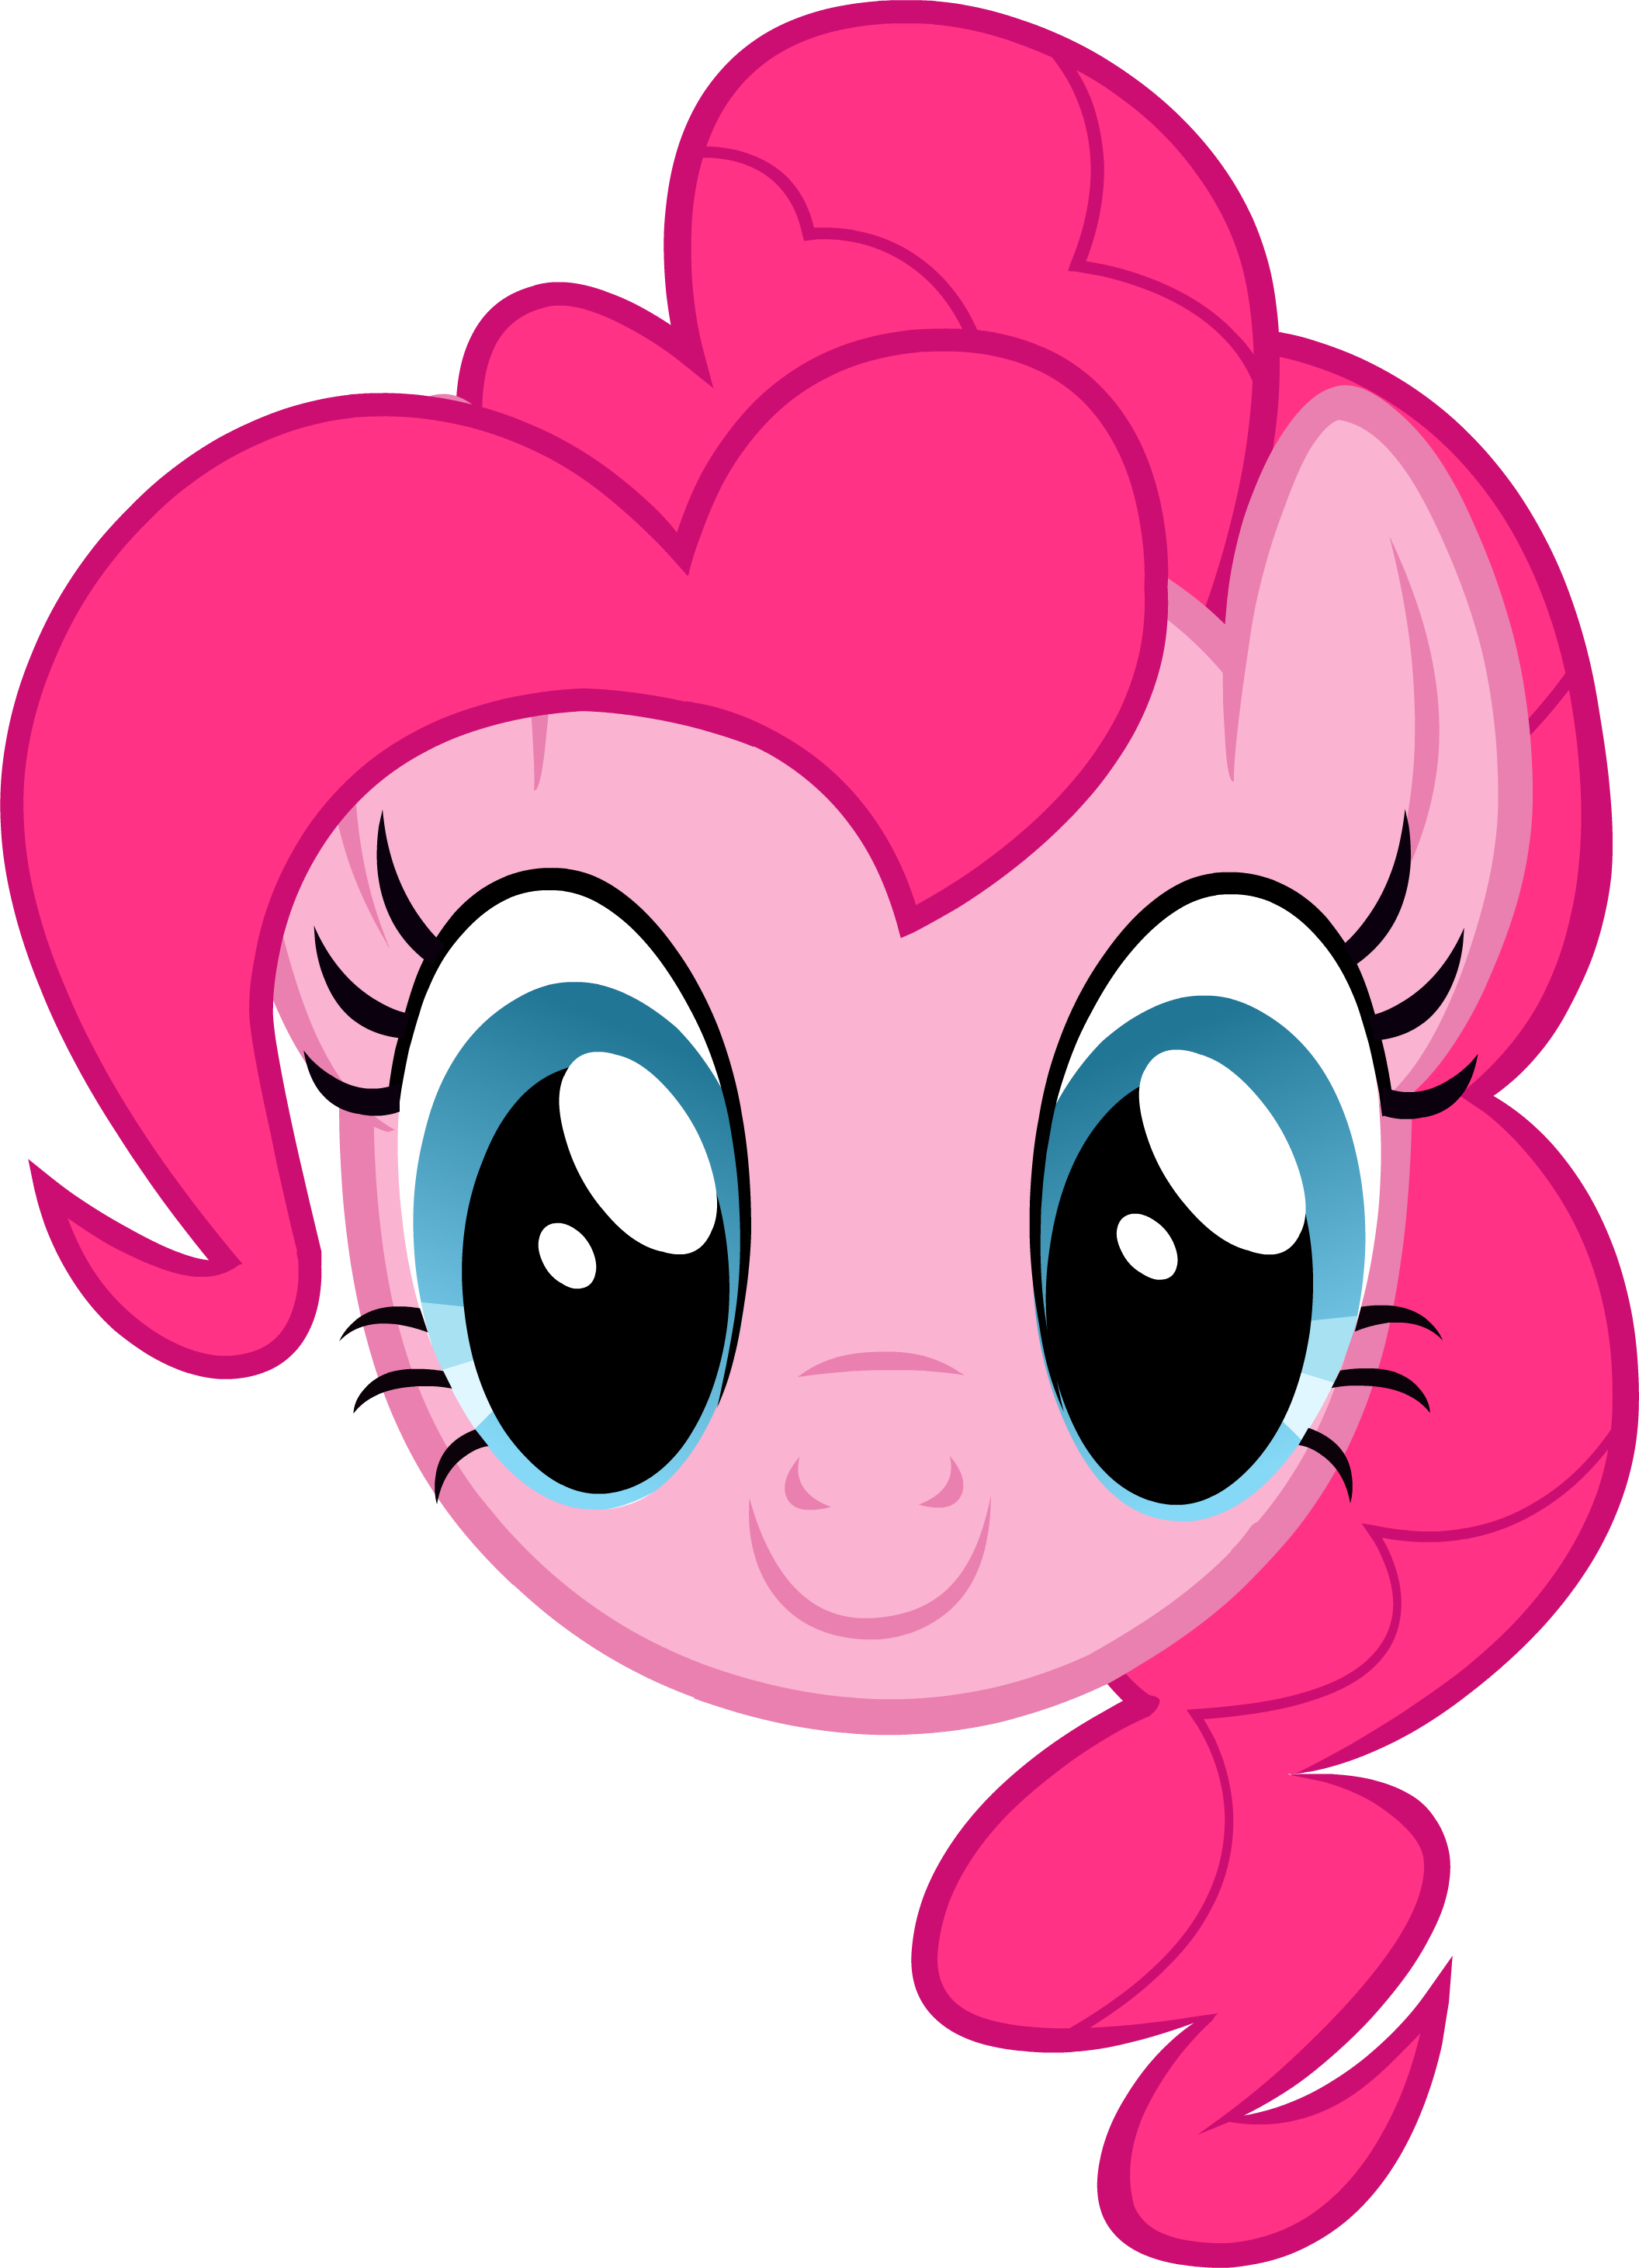 Pie throwing png. Mlp pinkie headshot headshots